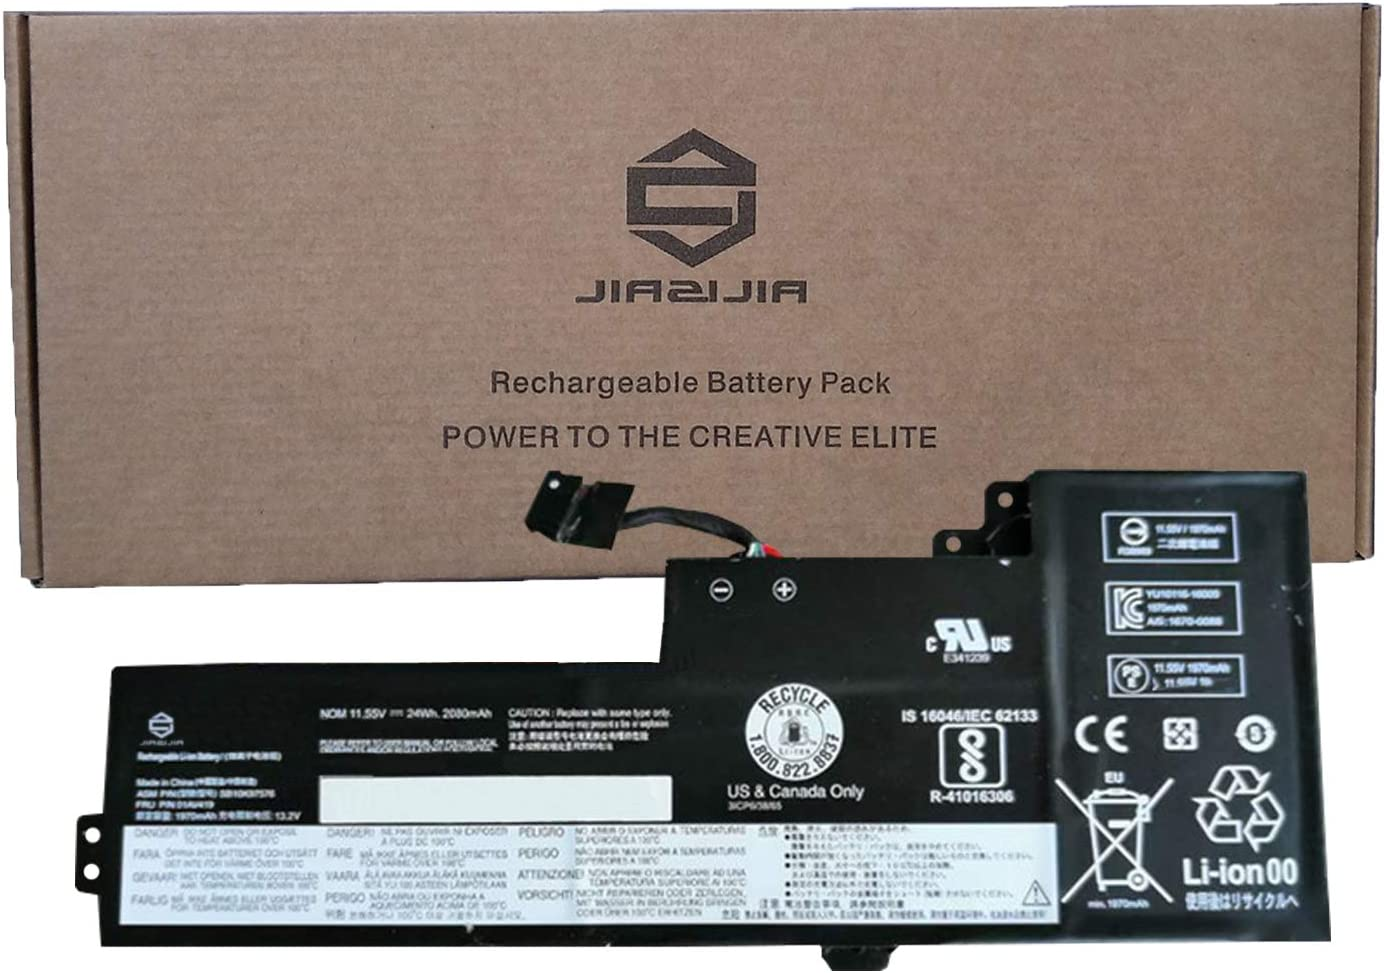 JIAZIJIA 01AV419 Laptop Battery Popular brand Inventory cleanup selling sale Lenovo Replacement ThinkPad for